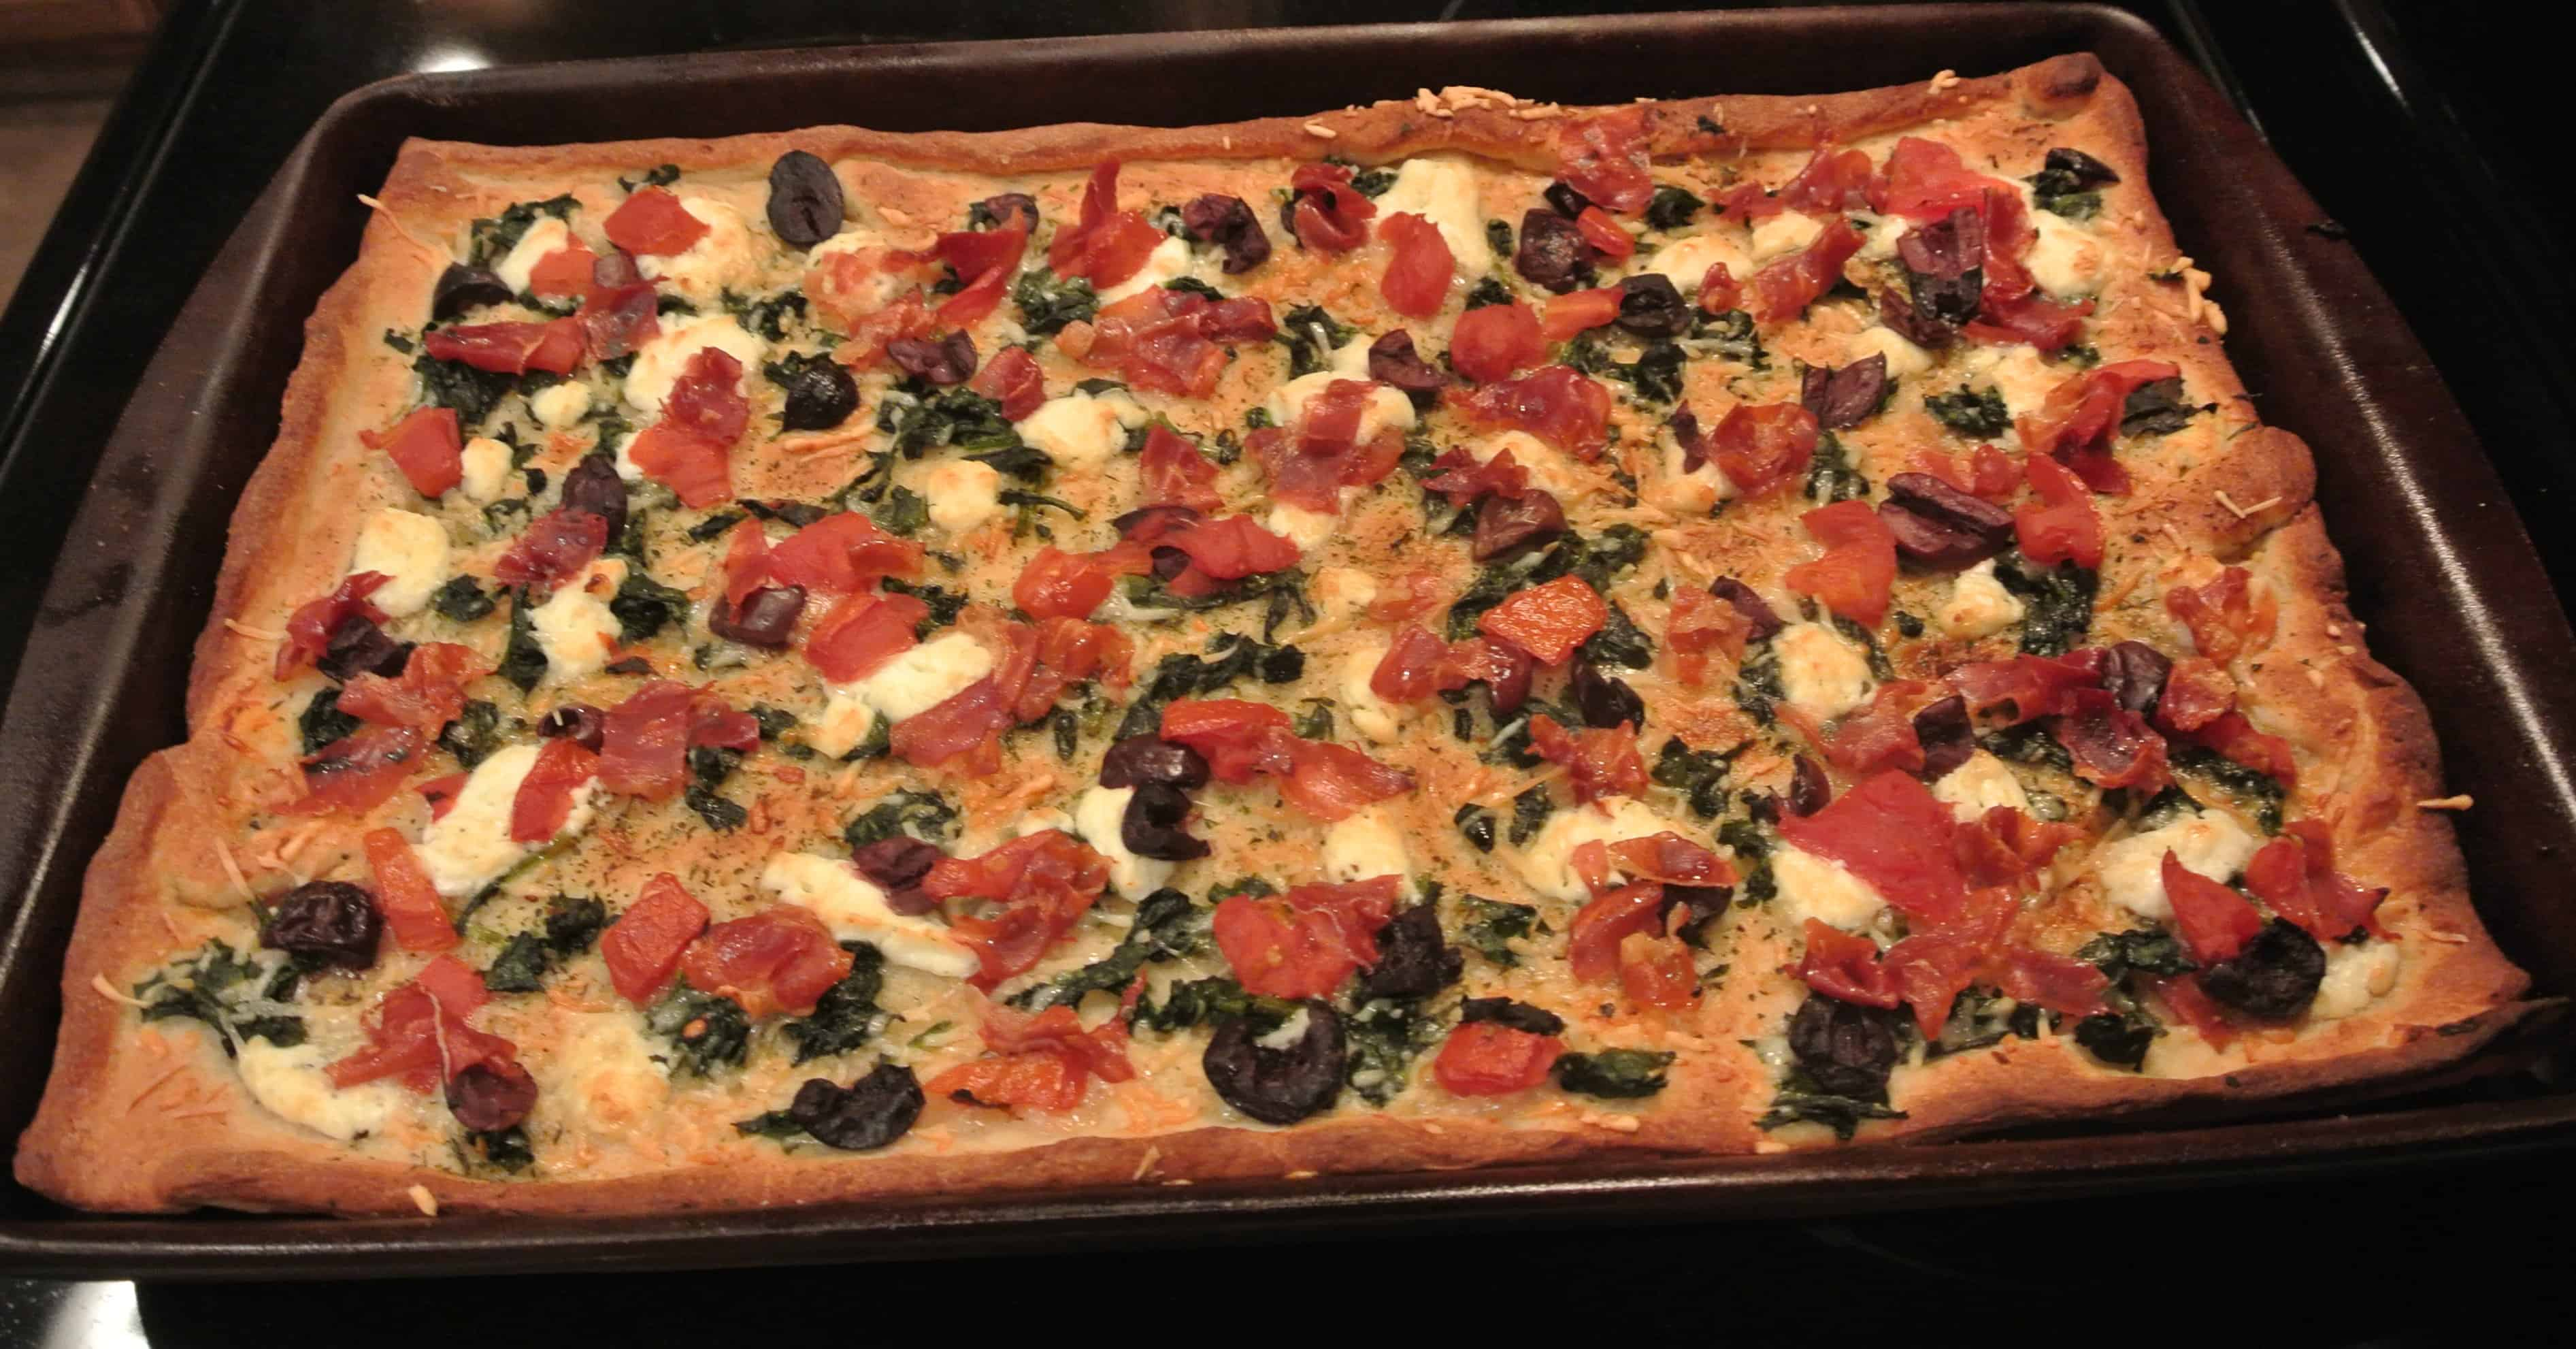 Sautéed Spinach Pizza